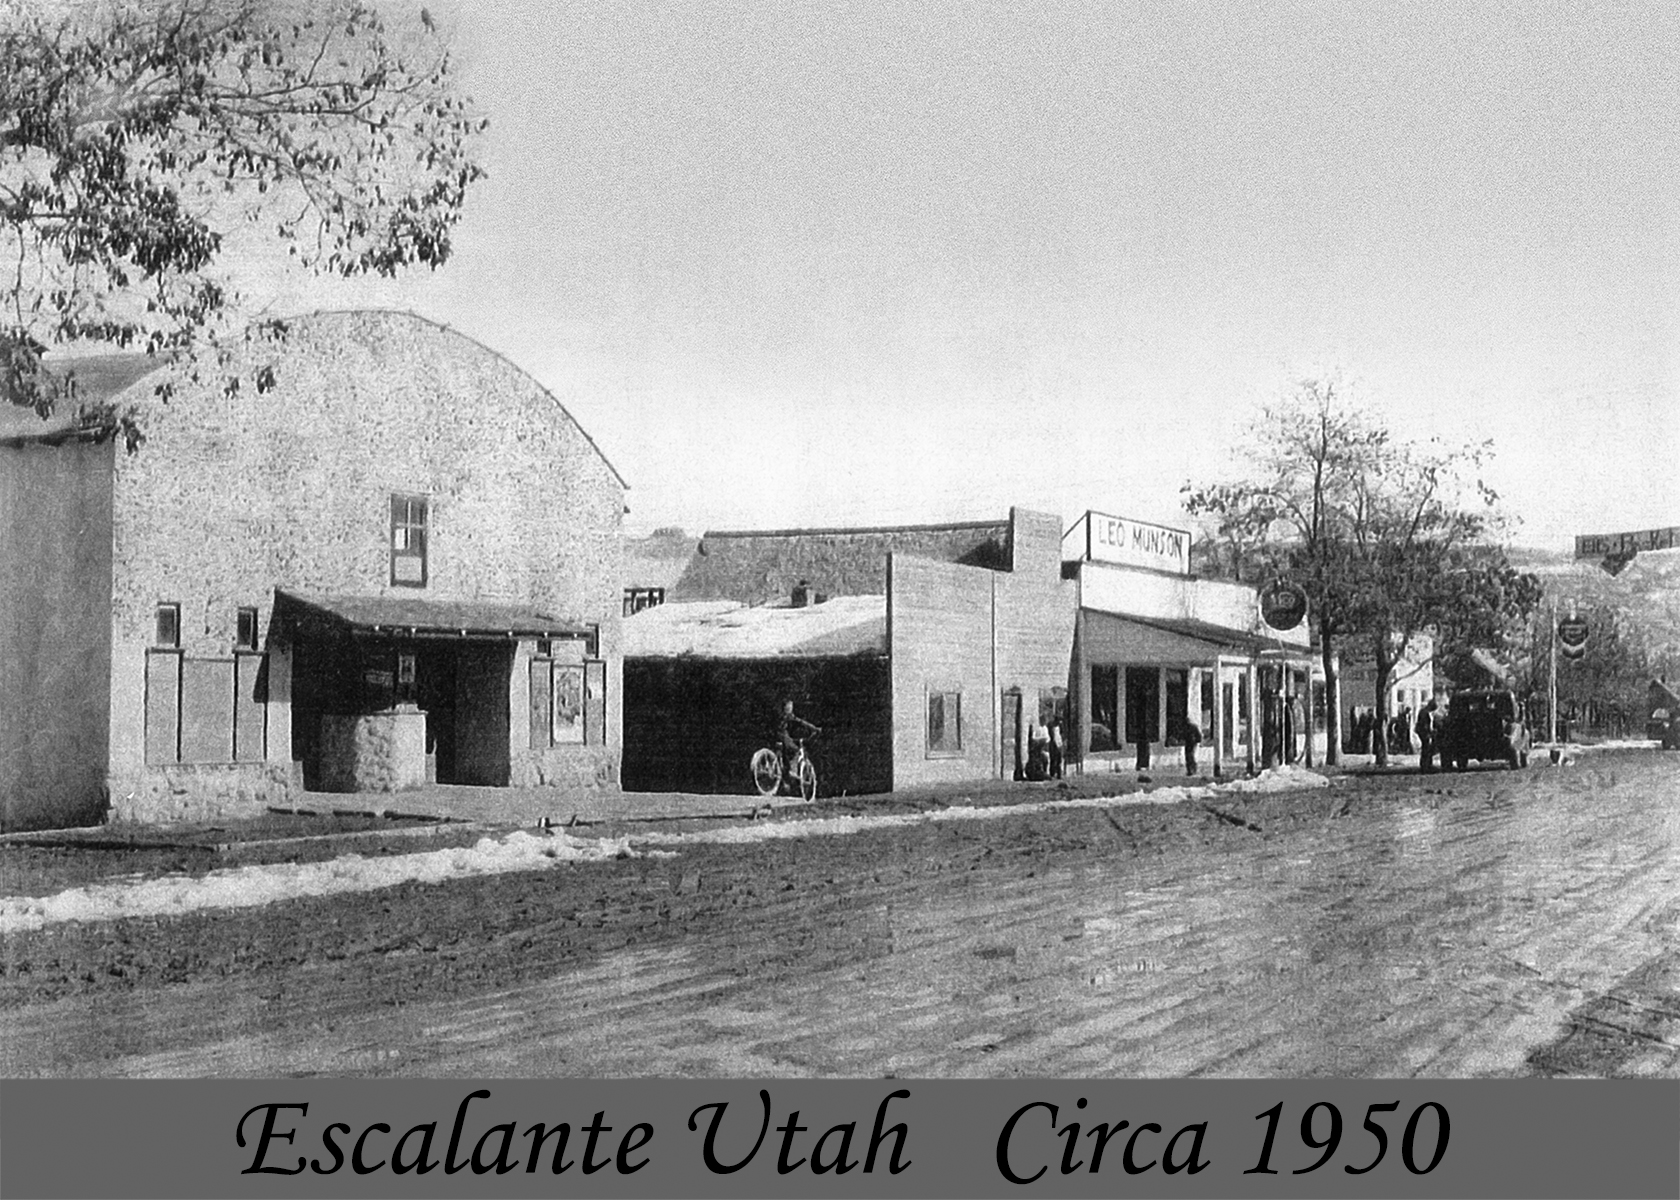 Escalante Showhouse 1930